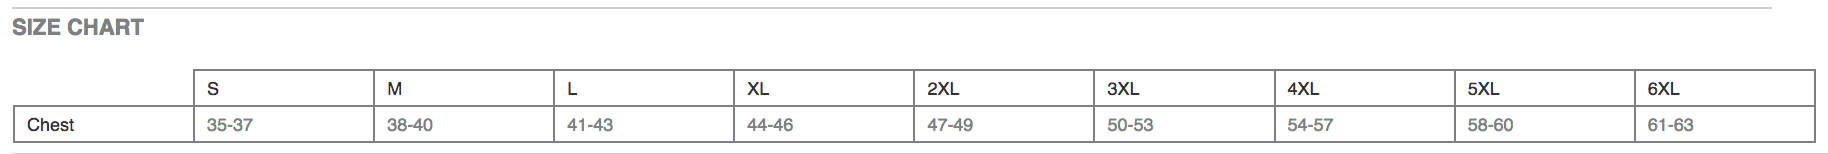 PC55 Sizing.png